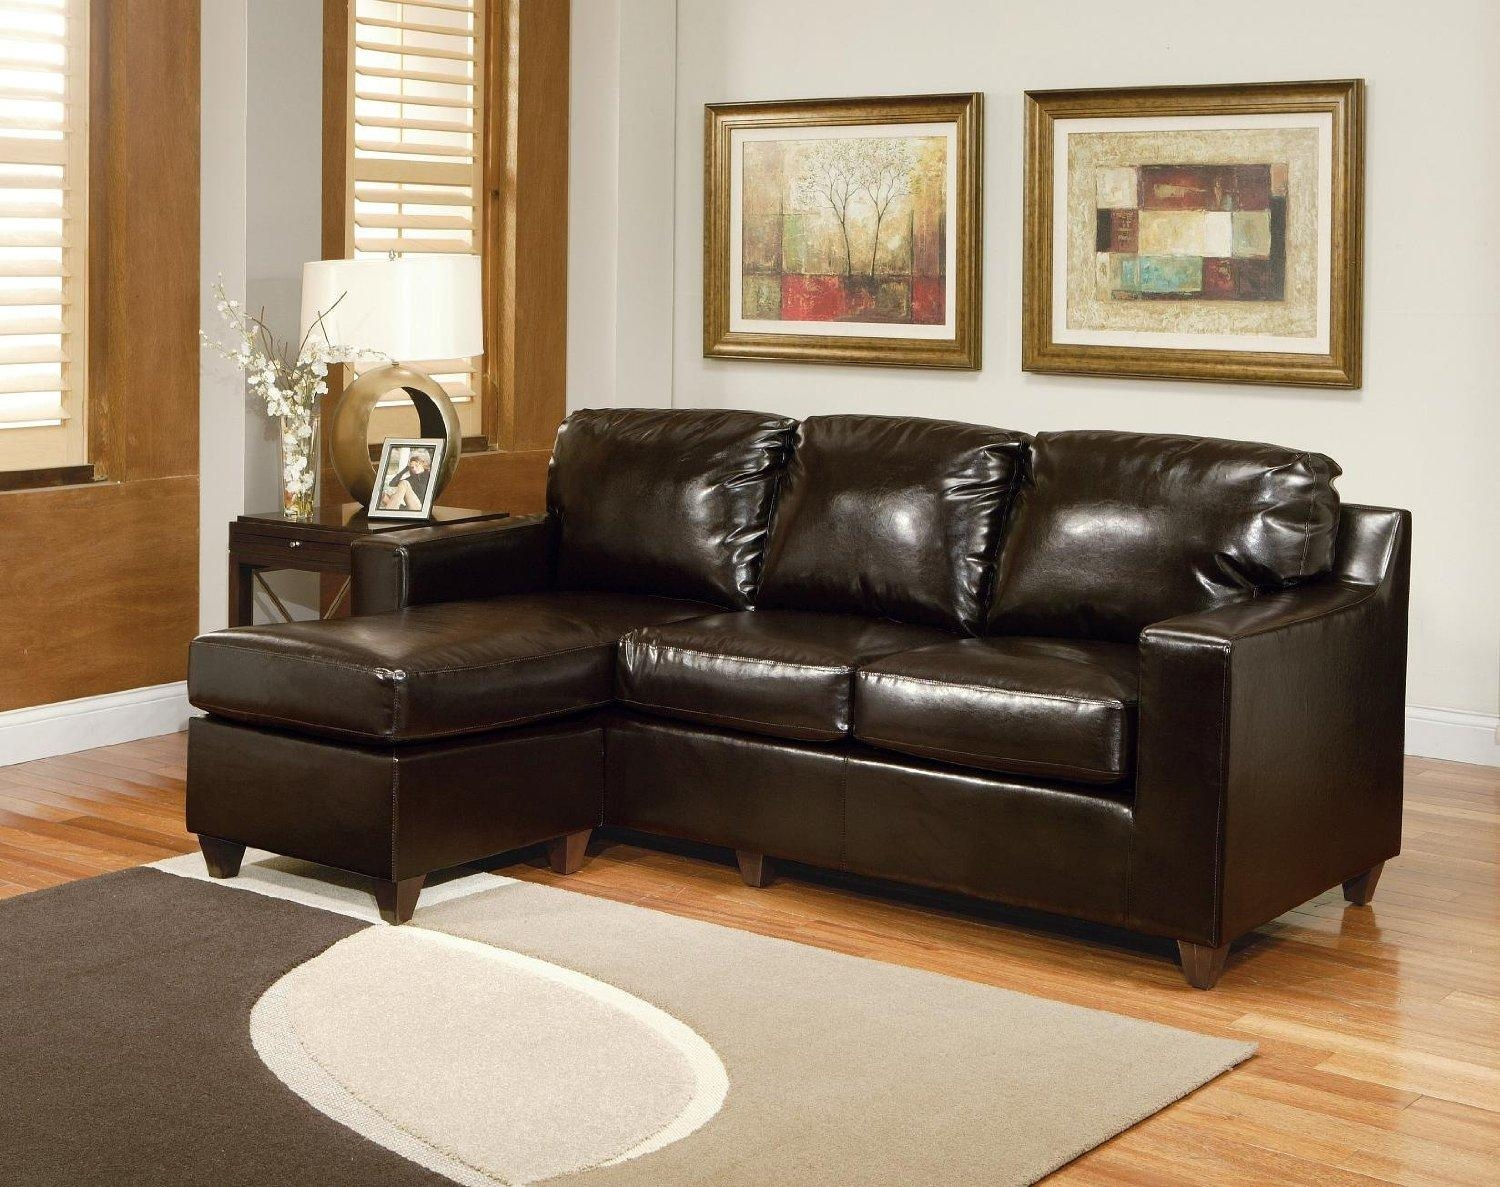 Small Scale Sectional Sofa With Chaise | Sofa Gallery | Kengire In Small Scale Sofas (Image 9 of 20)